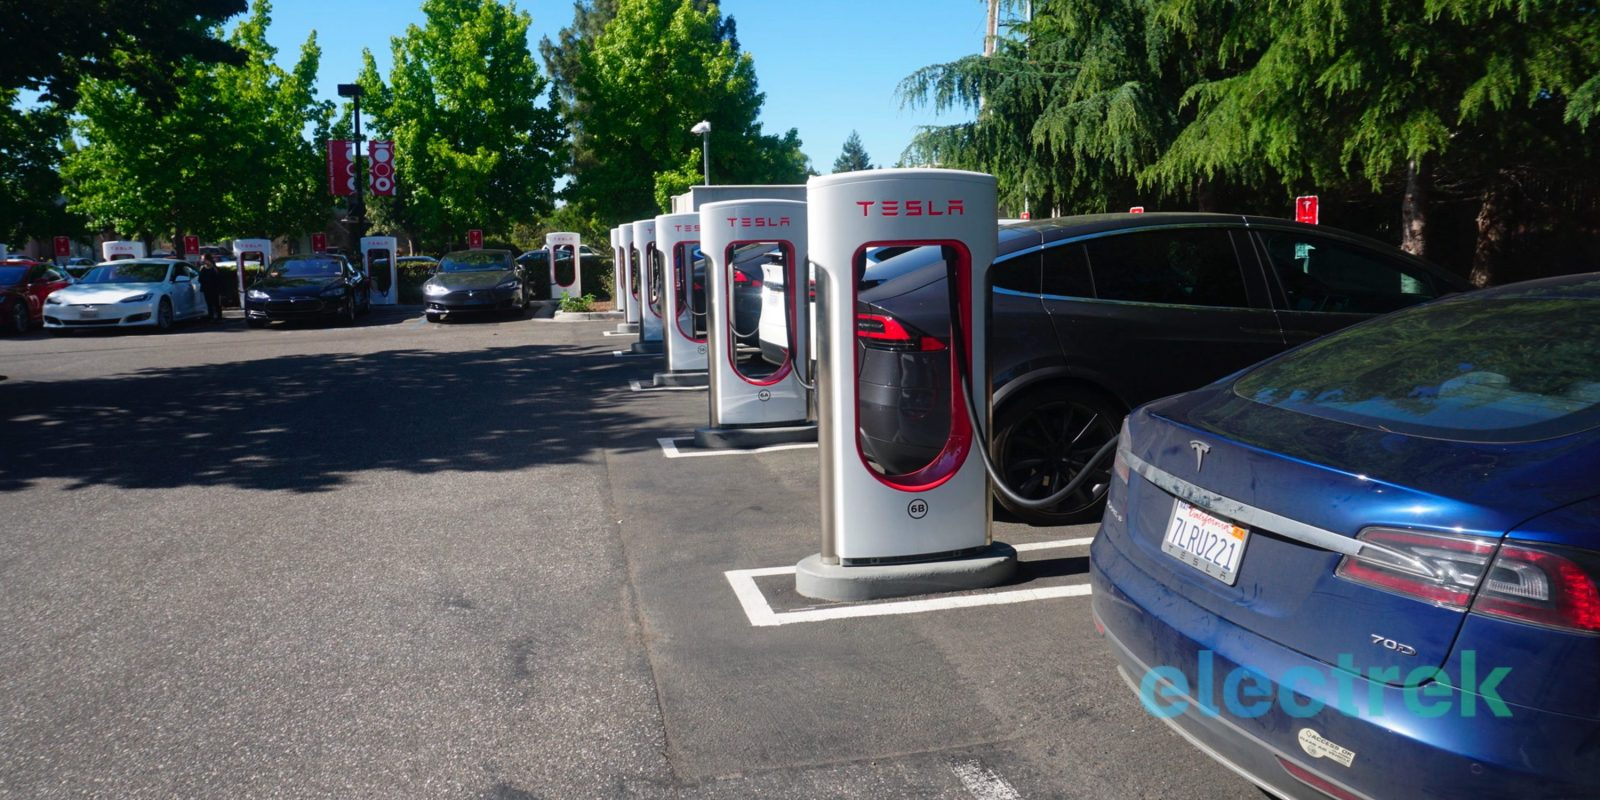 New York pressures Tesla to open up Supercharger network